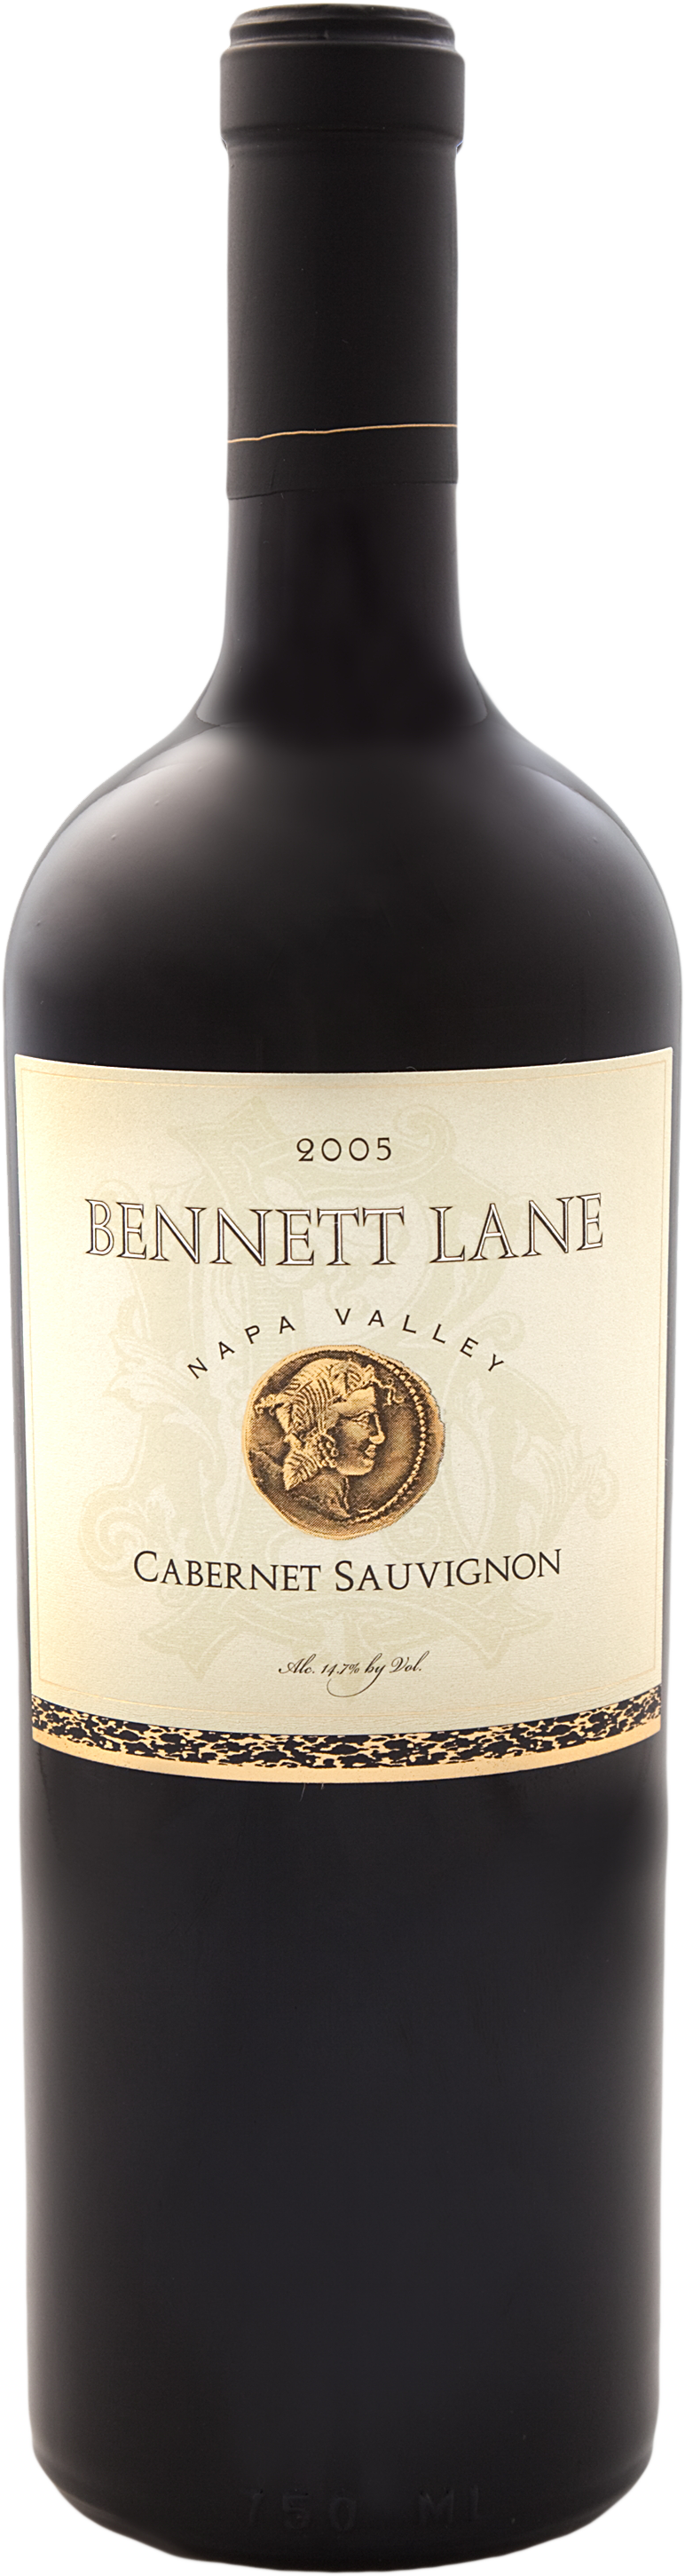 Product Image for 2008 Cabernet Sauvignon